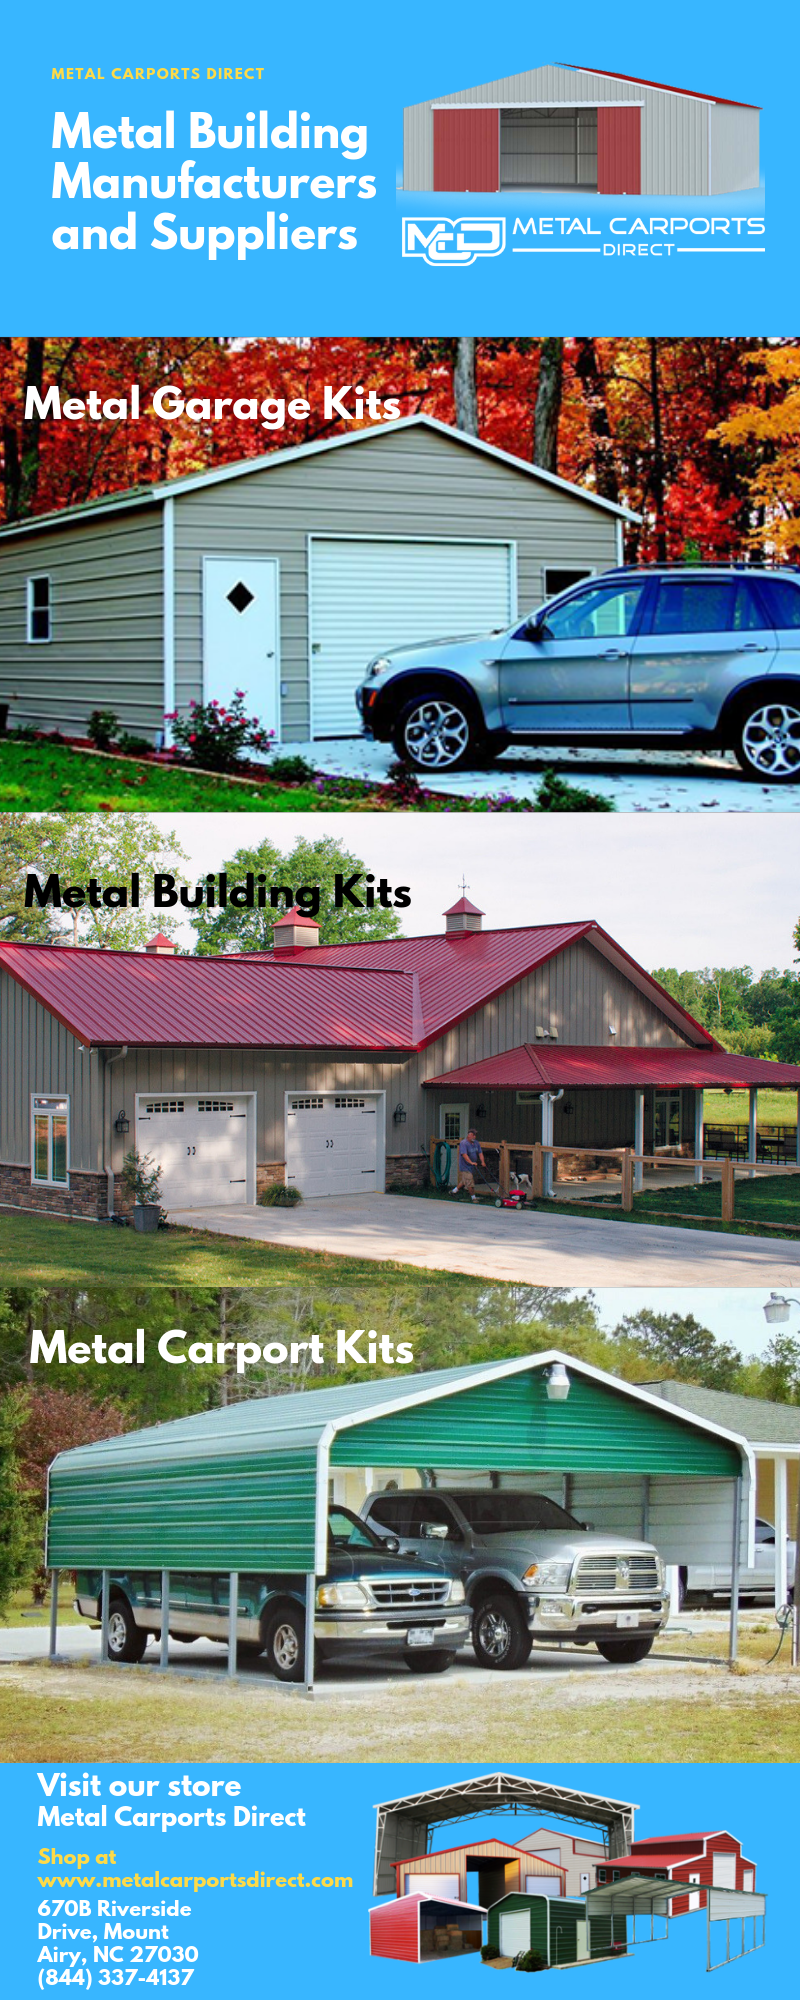 Shop for fully enclosed metal building kits, metal